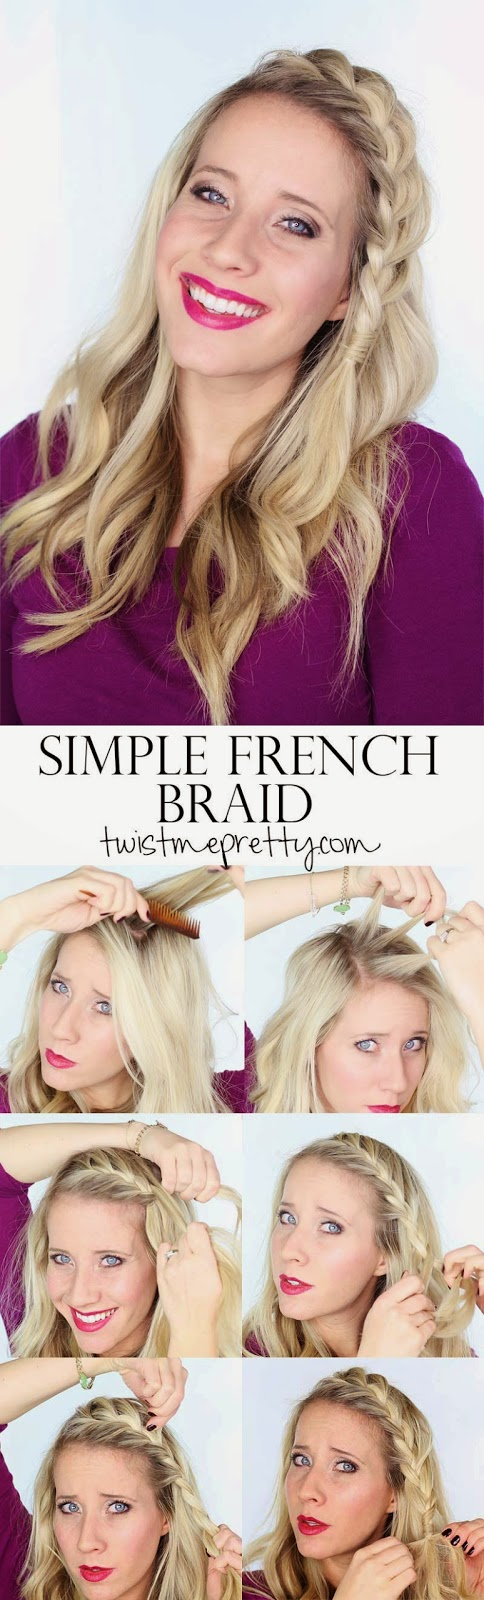 A Simple French Braid Hairstyles